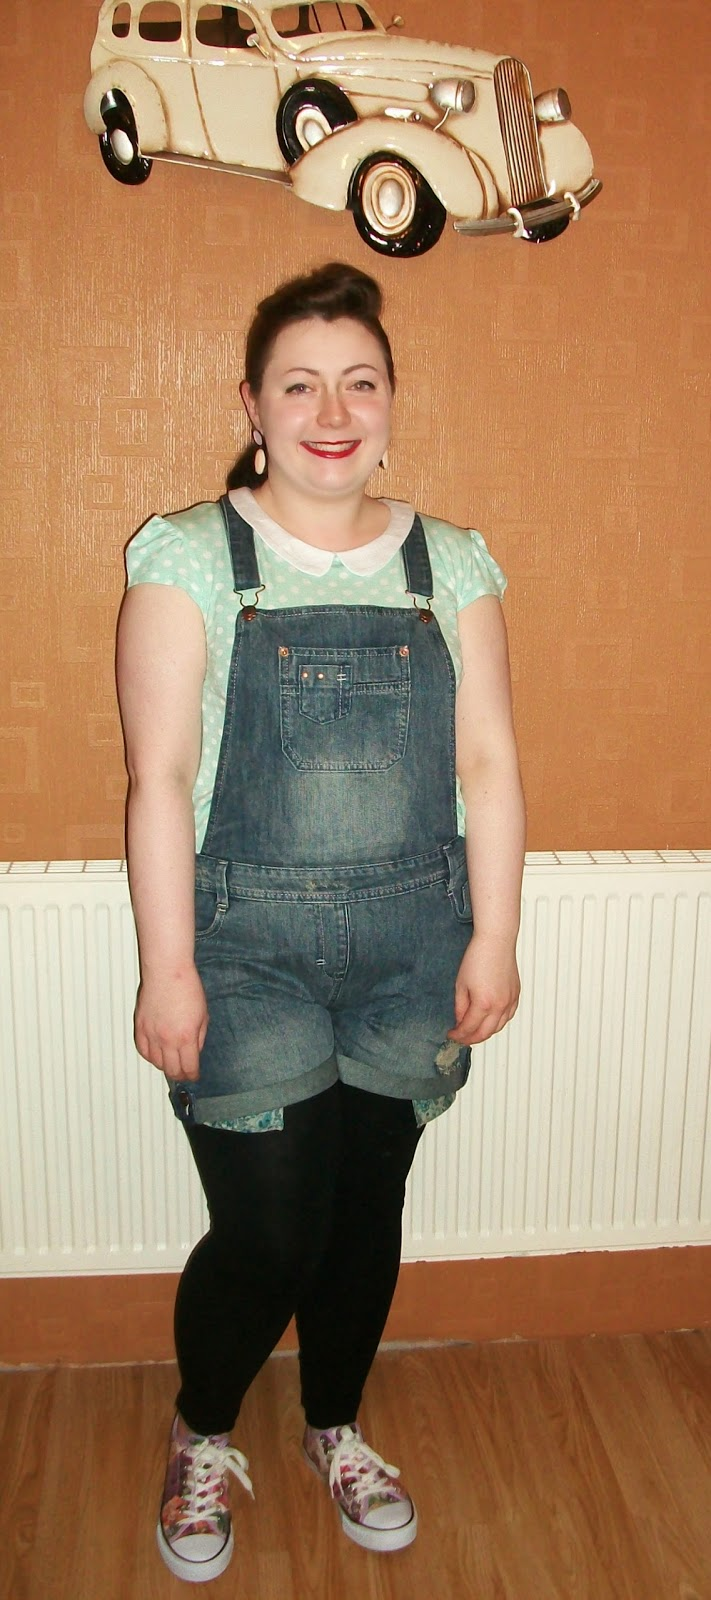 Joe Browns ripped short dungarees, joe browns floral pumps, zoe lianne blog outfit of the day, teddy girl inspired,